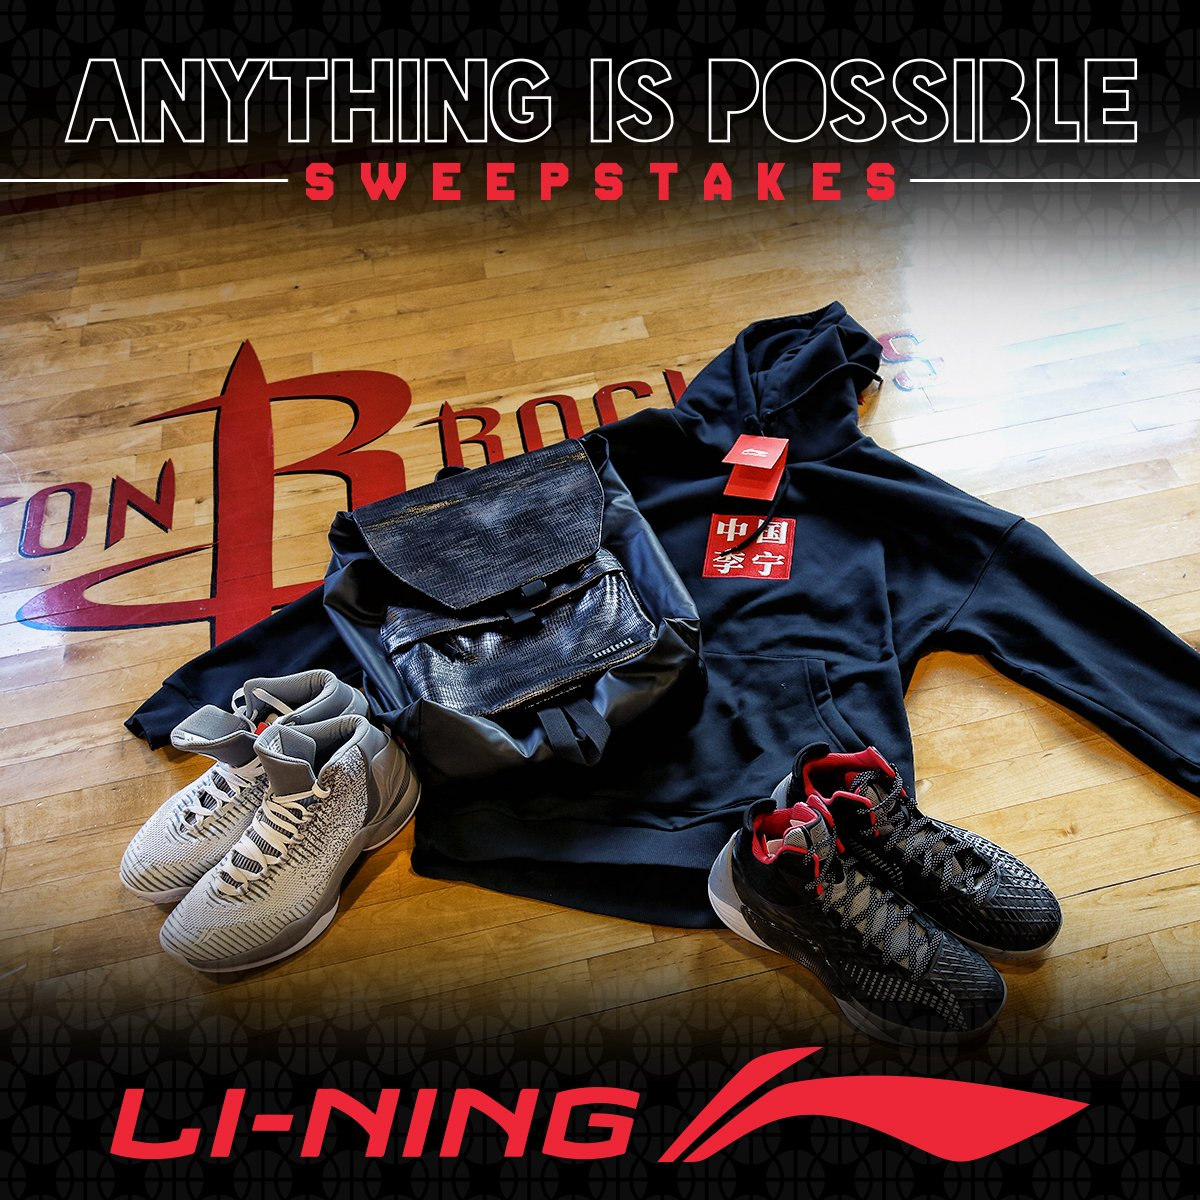 Enter to win a prize pack courtesy of @LiNing_Official!  https://t.co/DLUQNq2eBN https://t.co/ZfEFkBSsyH